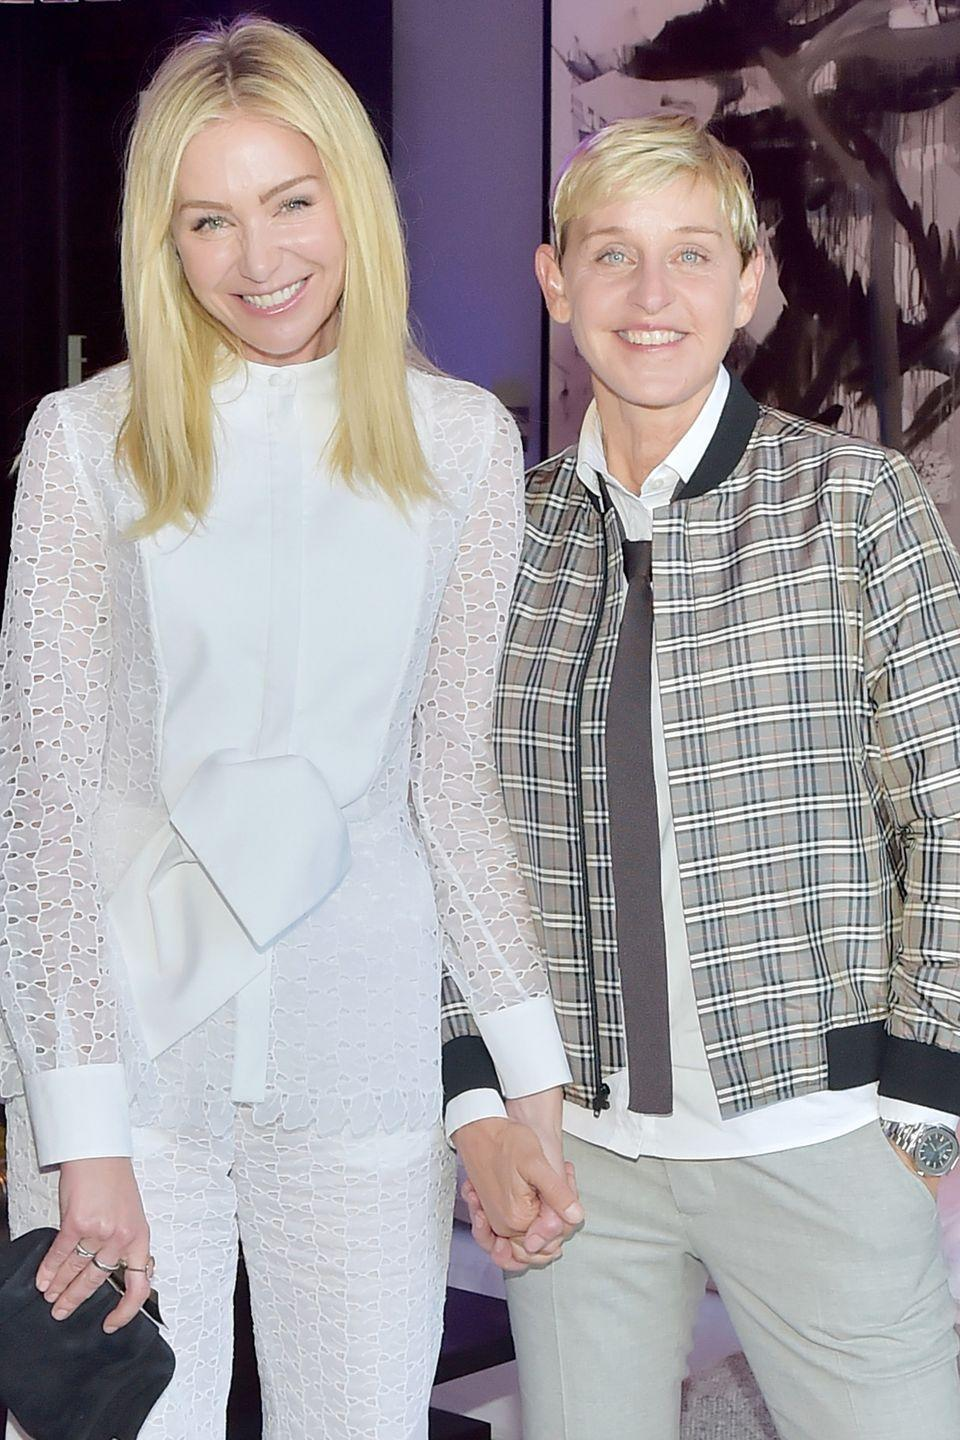 "<p>Ellen and Portia started dating in 2004, and were <a href=""https://www.countryliving.com/life/inspirational-stories/a45160/ellen-degeneres-portia-de-rossi-love-story/"" rel=""nofollow noopener"" target=""_blank"" data-ylk=""slk:later married"" class=""link rapid-noclick-resp"">later married</a> in 2008 after the California Supreme Court overturned the ban on same-sex marriage. ""I'm so grateful for the love in my life,"" DeGeneres told <em><a href=""http://people.com/tv/ellen-degeneres-on-finding-love-of-her-life-with-portia-de-rossi-we-are-so-lucky/"" rel=""nofollow noopener"" target=""_blank"" data-ylk=""slk:People"" class=""link rapid-noclick-resp"">People</a></em> in 2016. ""Because not everybody finds that. Not everybody finds that best friend."" </p>"